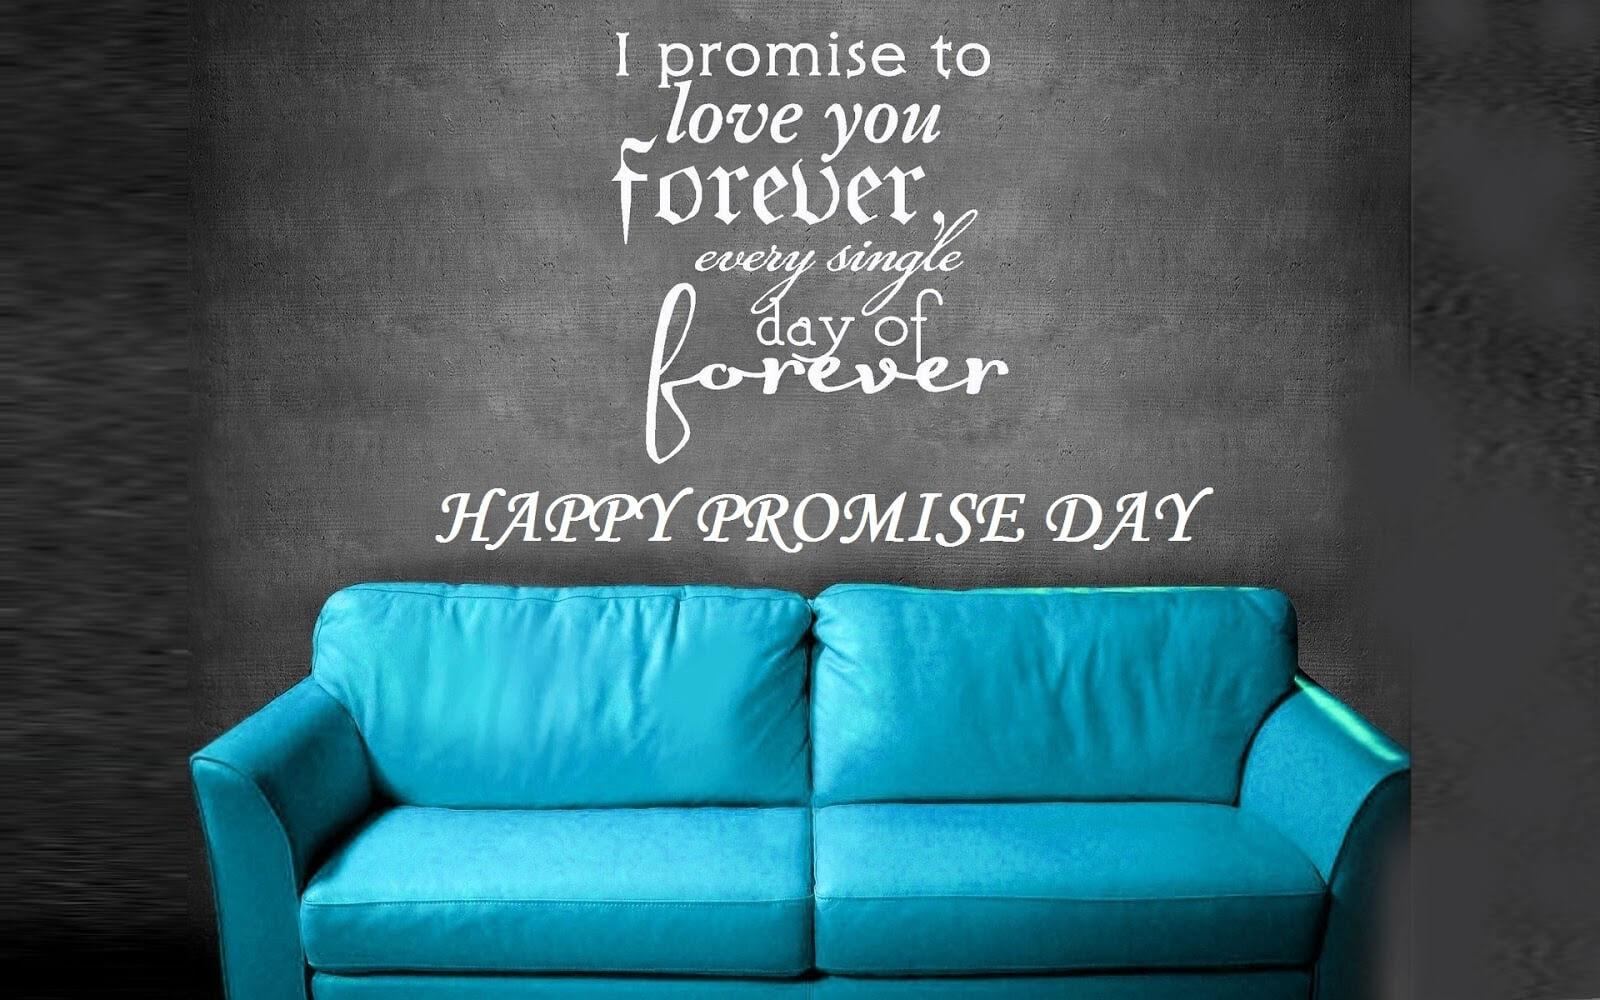 happy promise day wishes quotes love valentine sofa image hd wallpaper